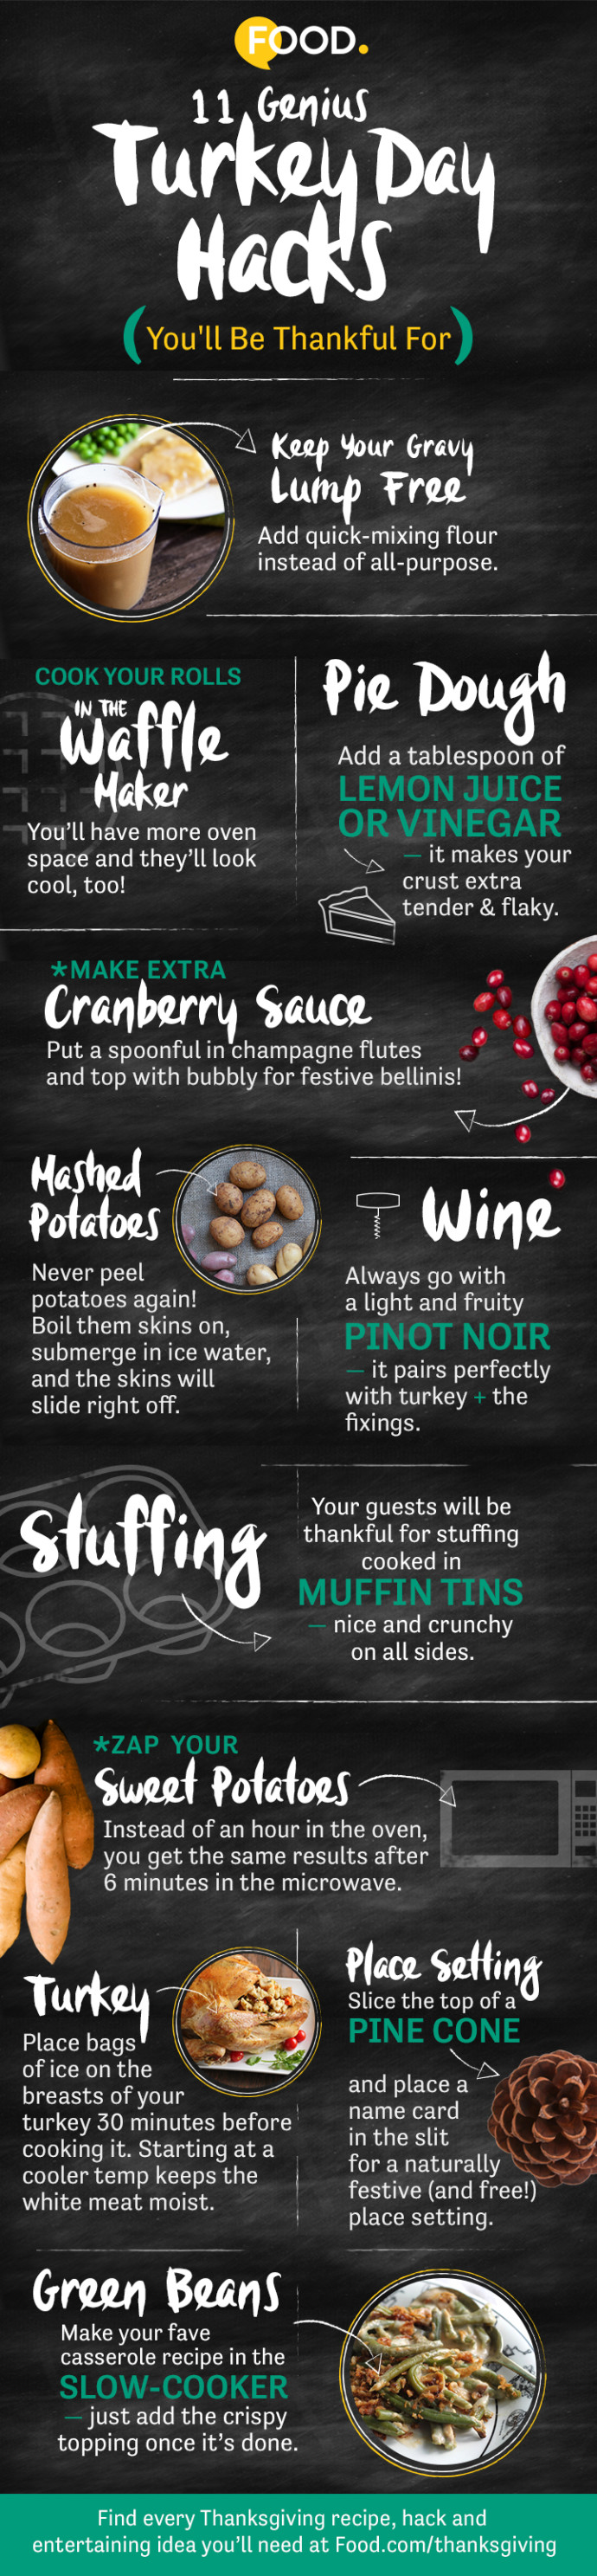 11 Genius Turkey Day Hacks You'll Be Thankful For